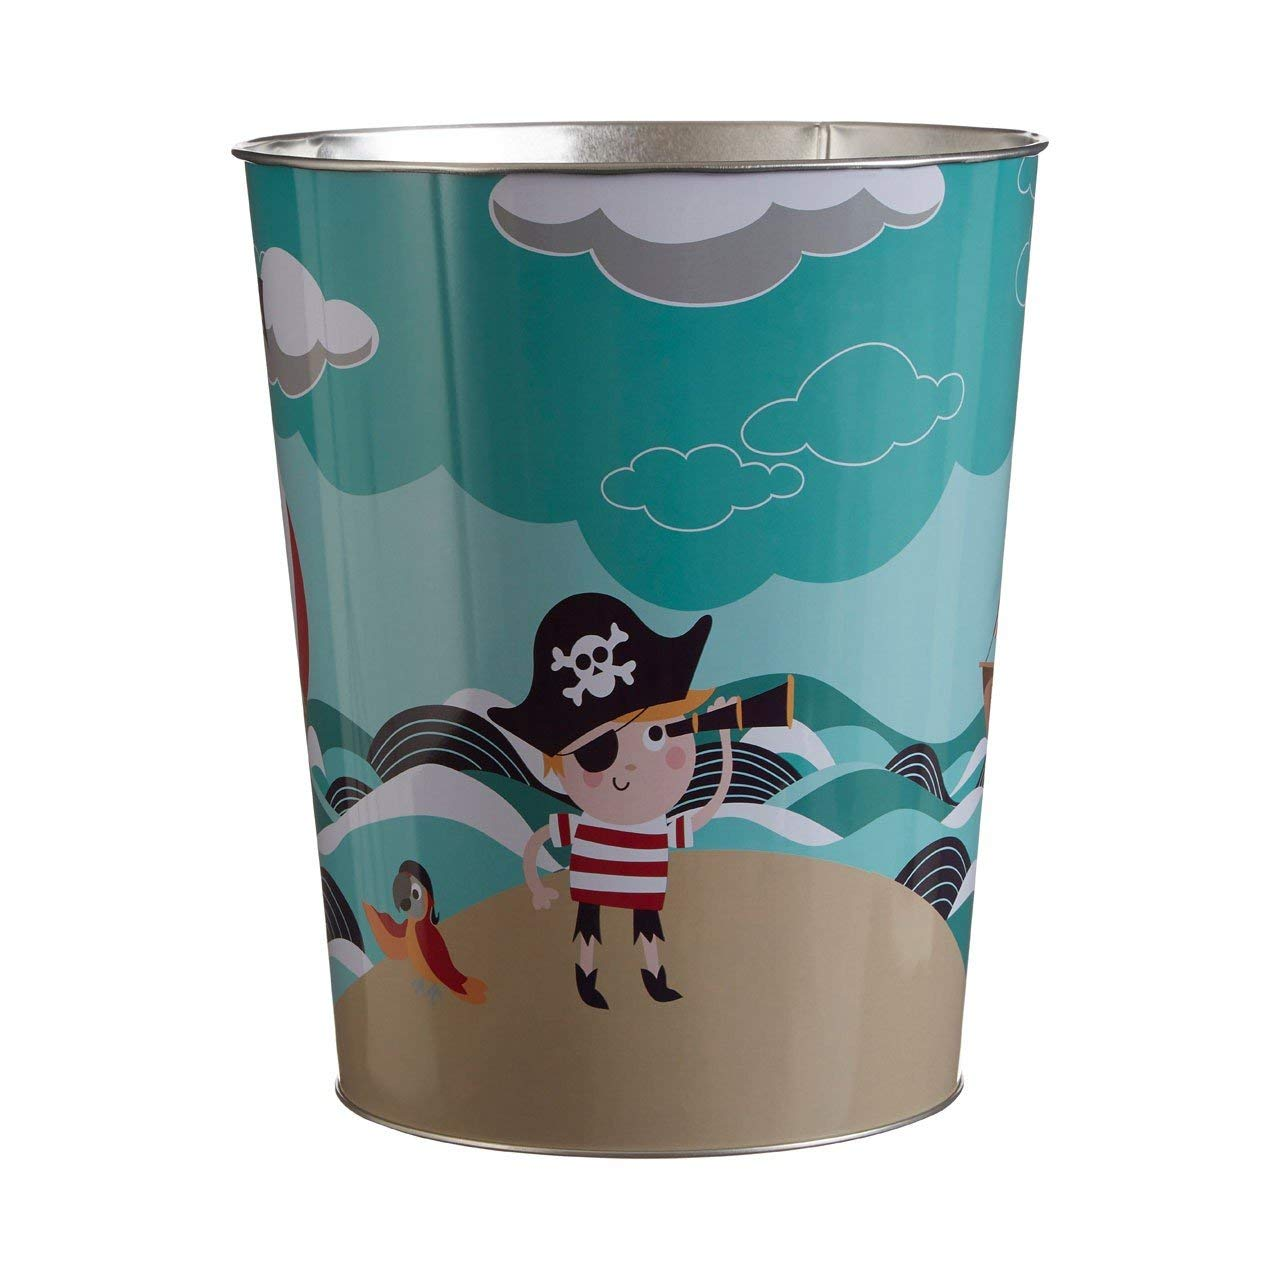 Prime Furnishing Pirate Waste Bin